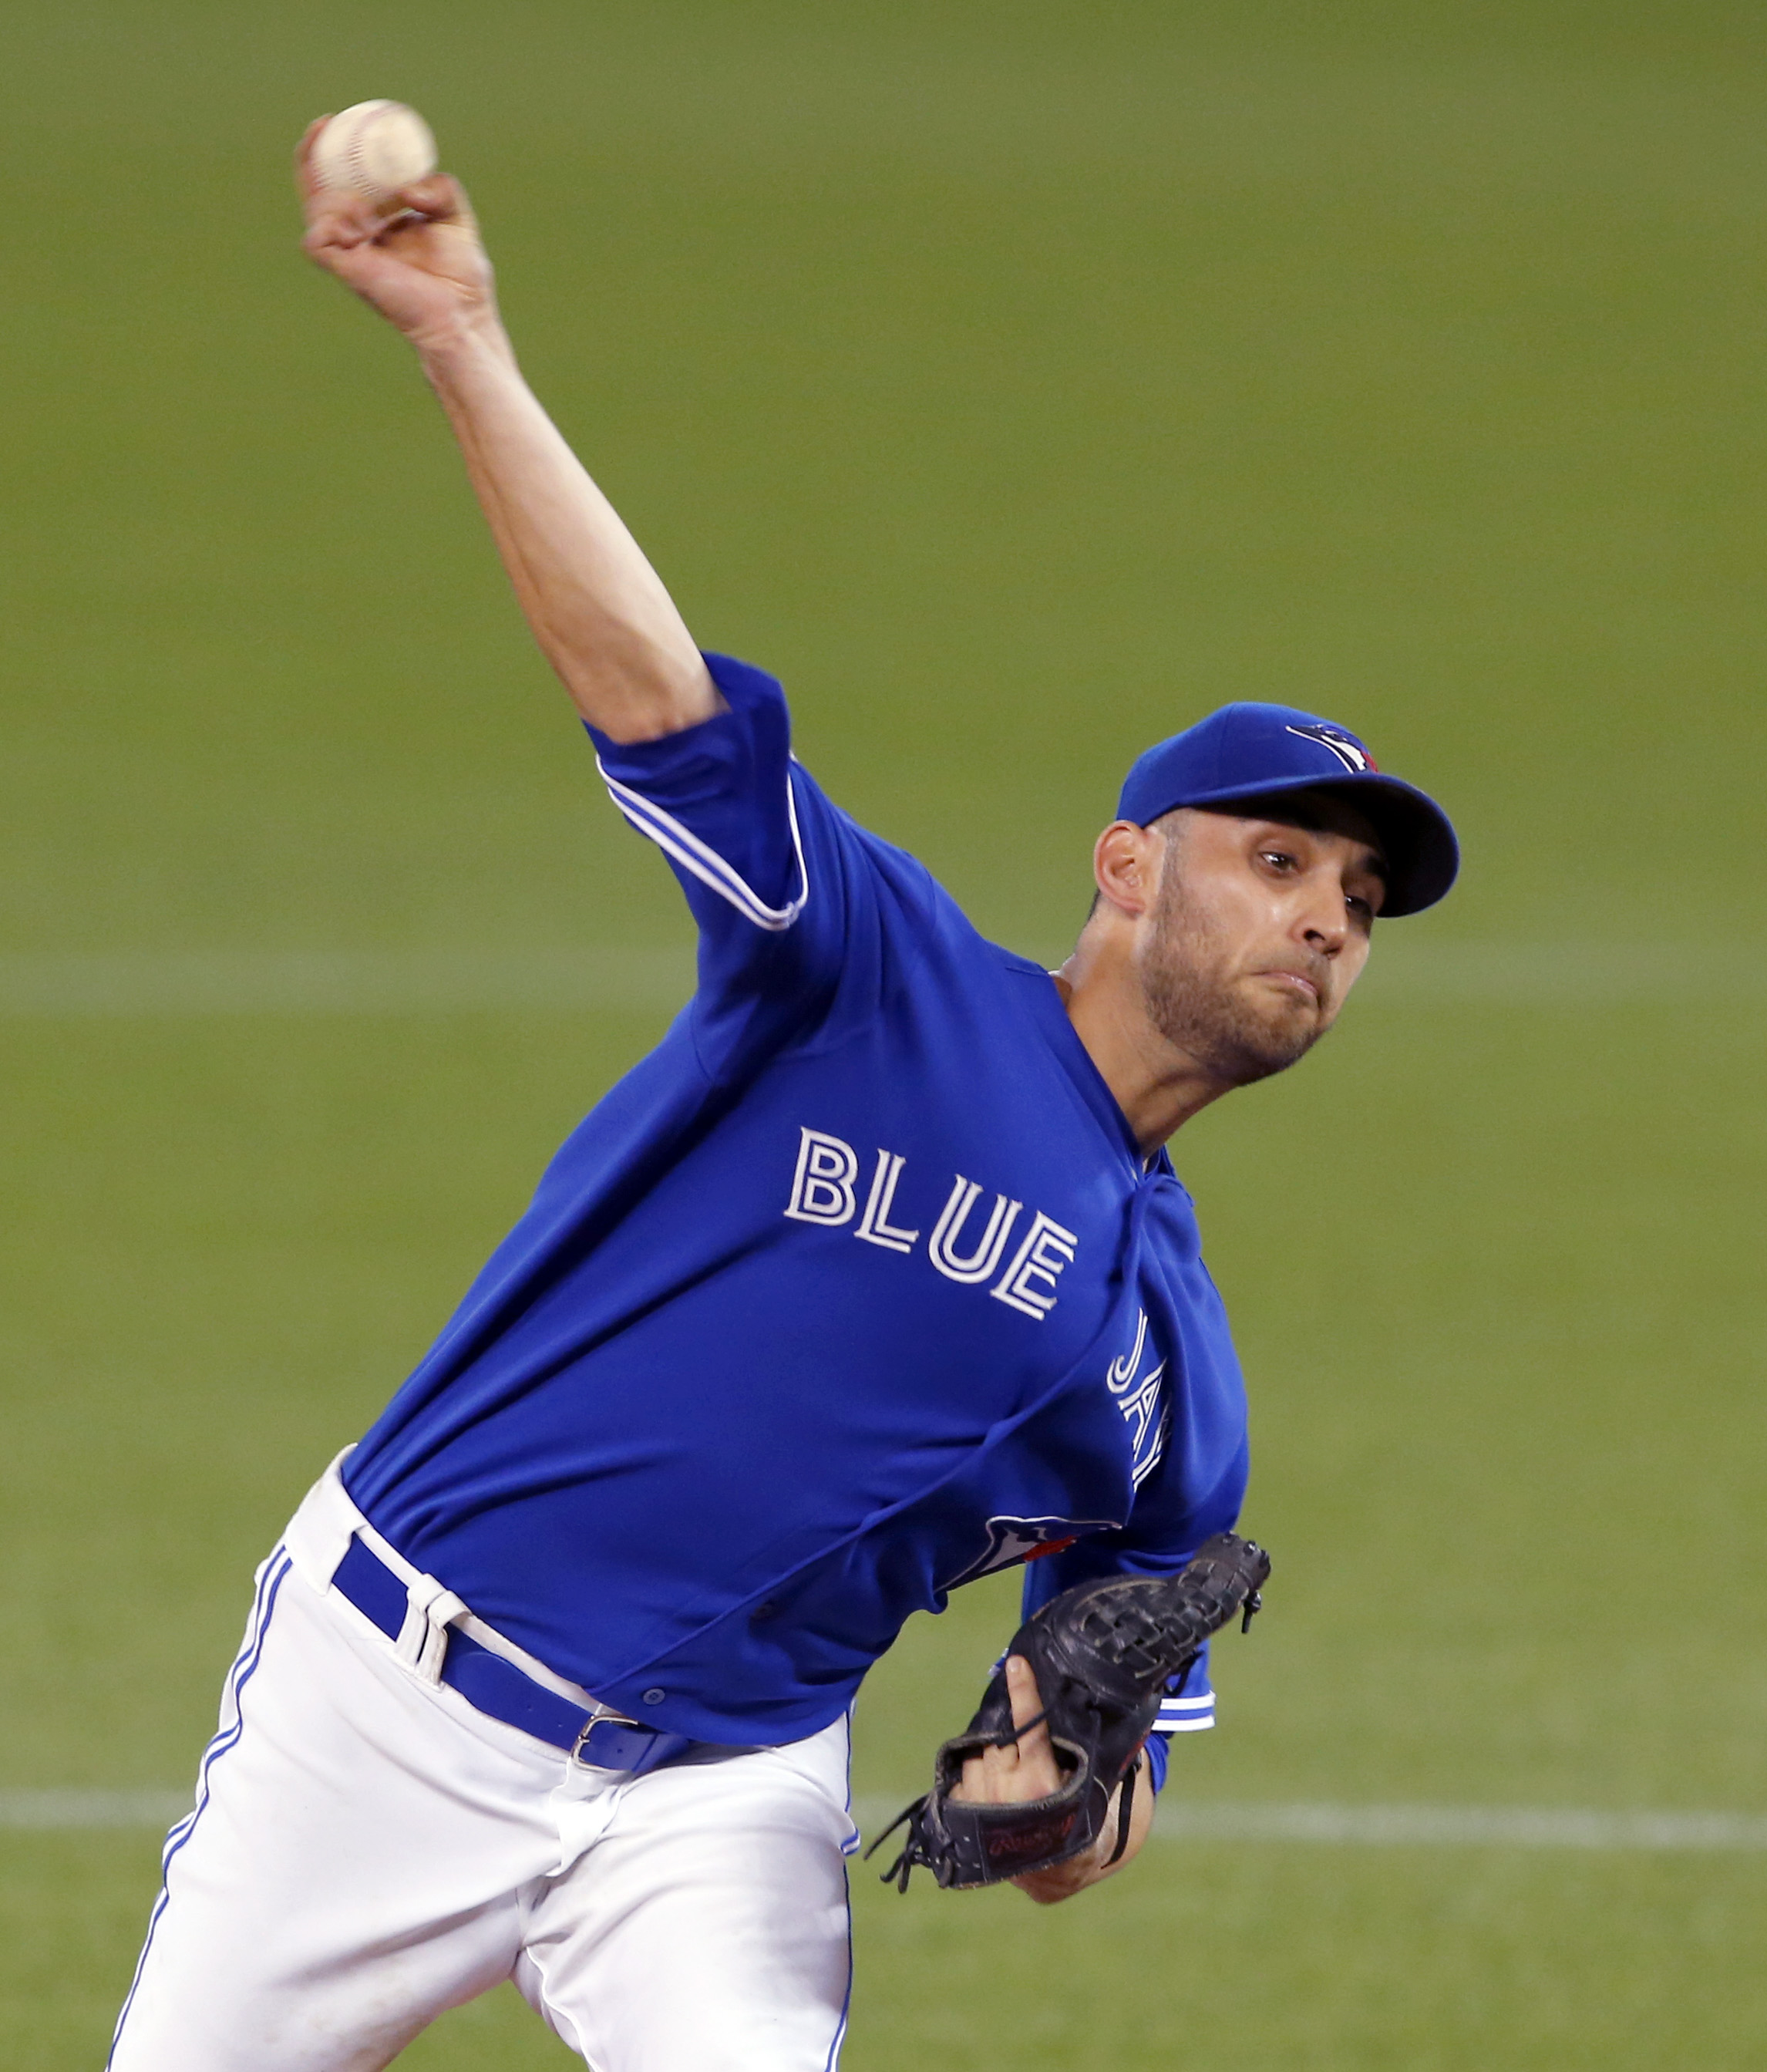 Toronto Blue Jays starting pitcher Marco Estrada throws against the Kansas City Royals during the eighth inning in Game 5 of baseball's American League Championship Series on Wednesday, Oct. 21, 2015, in Toronto. (AP Photo/Paul Sancya)